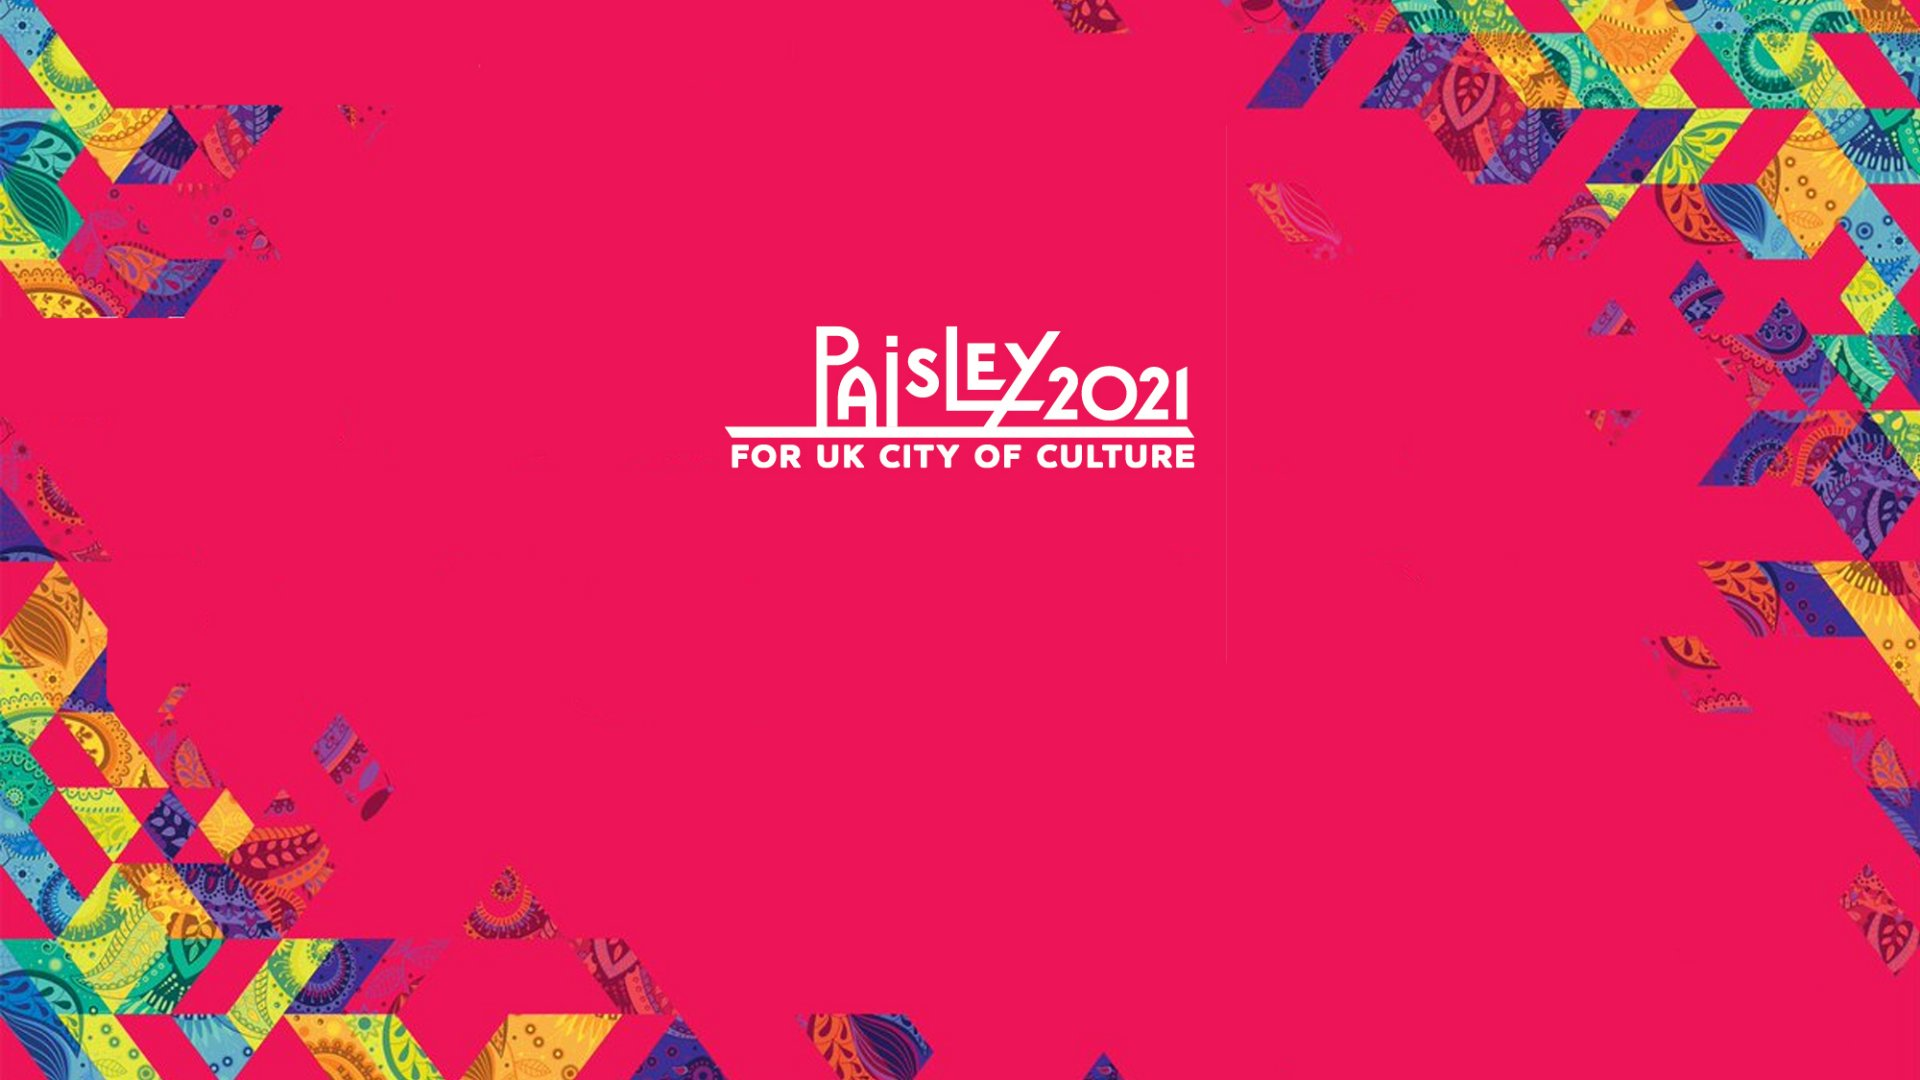 We Back The Bid for Paisley 2021